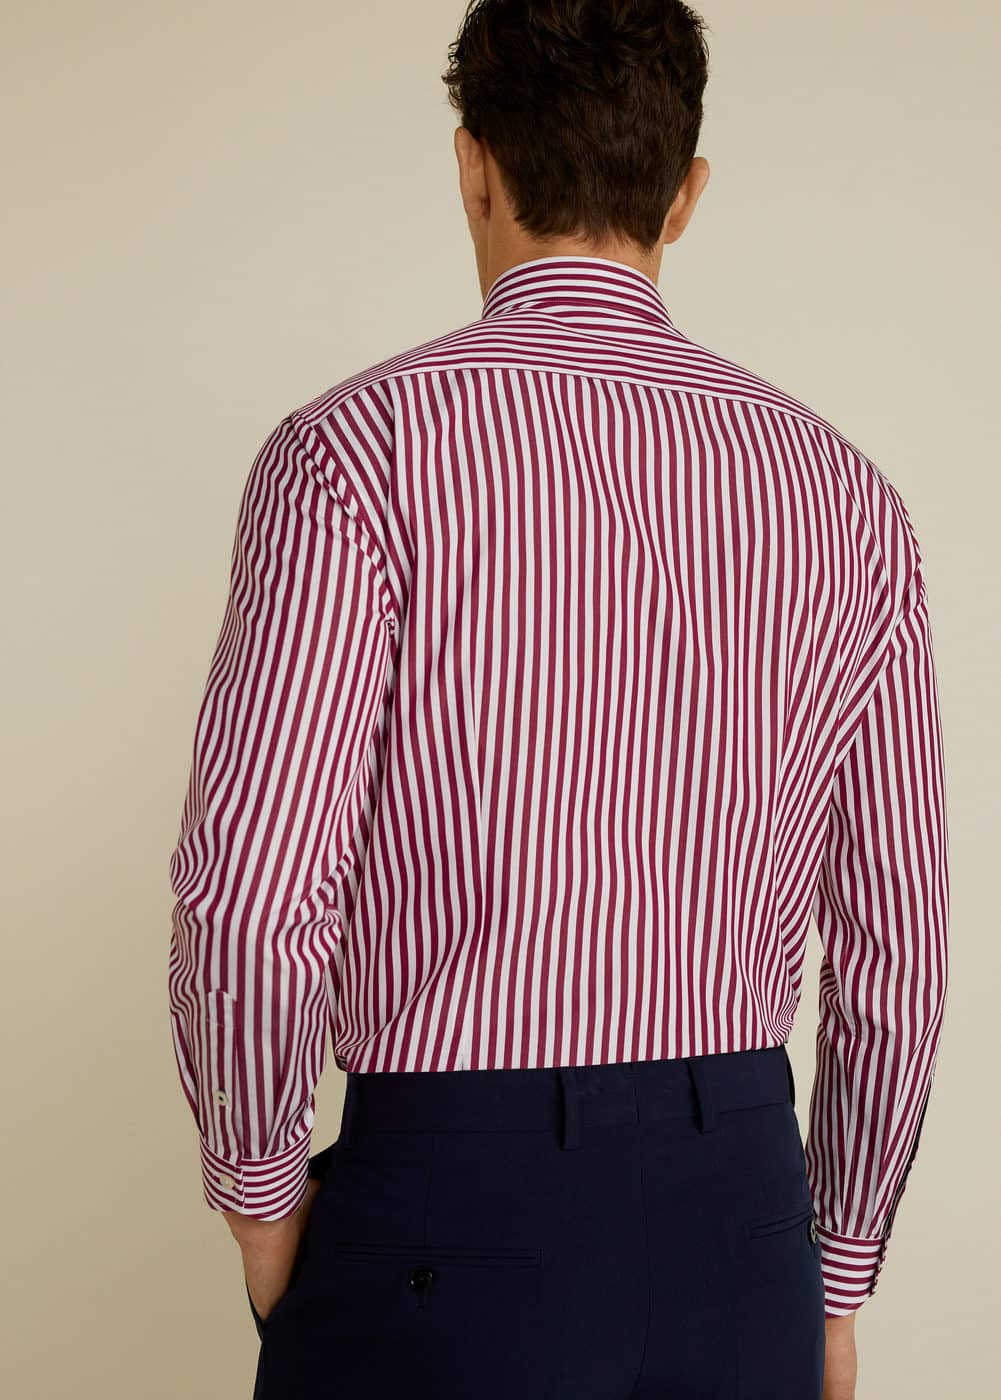 Mango - Slim Fit Tailored-Hemd, Baumwolle - 3